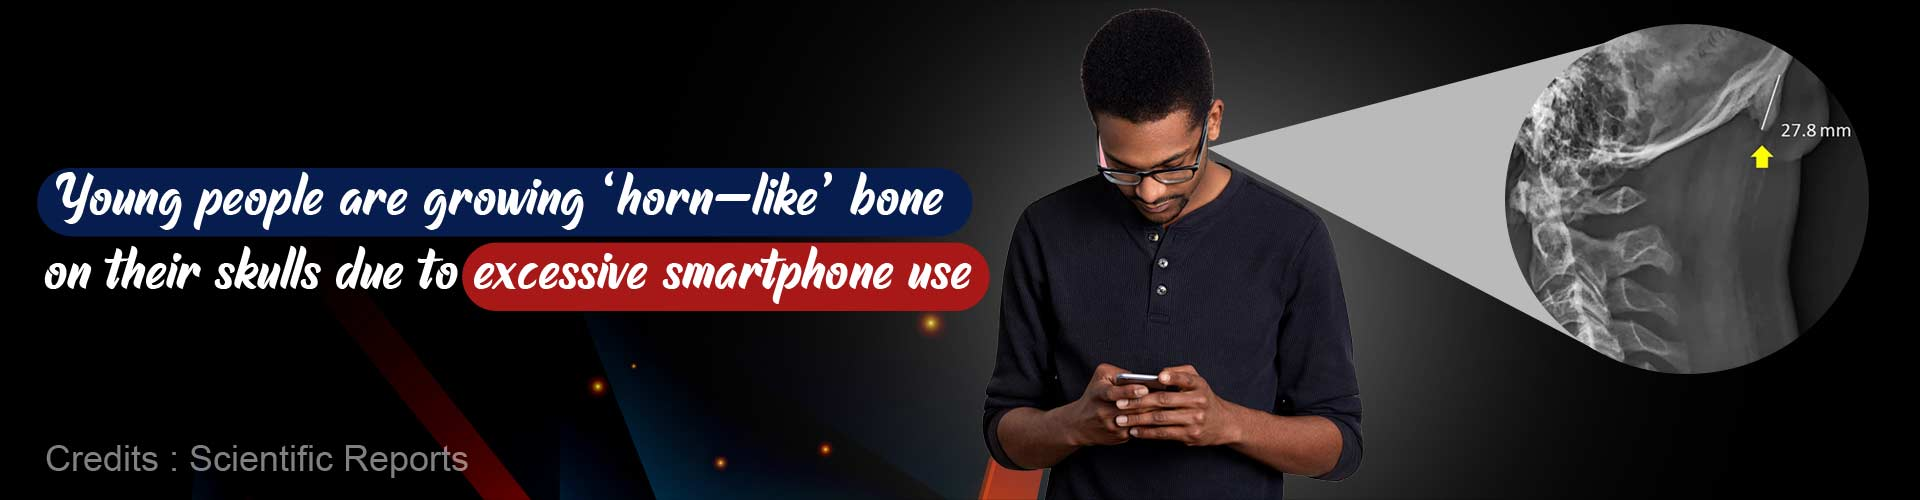 Young people are growing ''horn-like'' bone on their skulls due to excessive smartphone use.